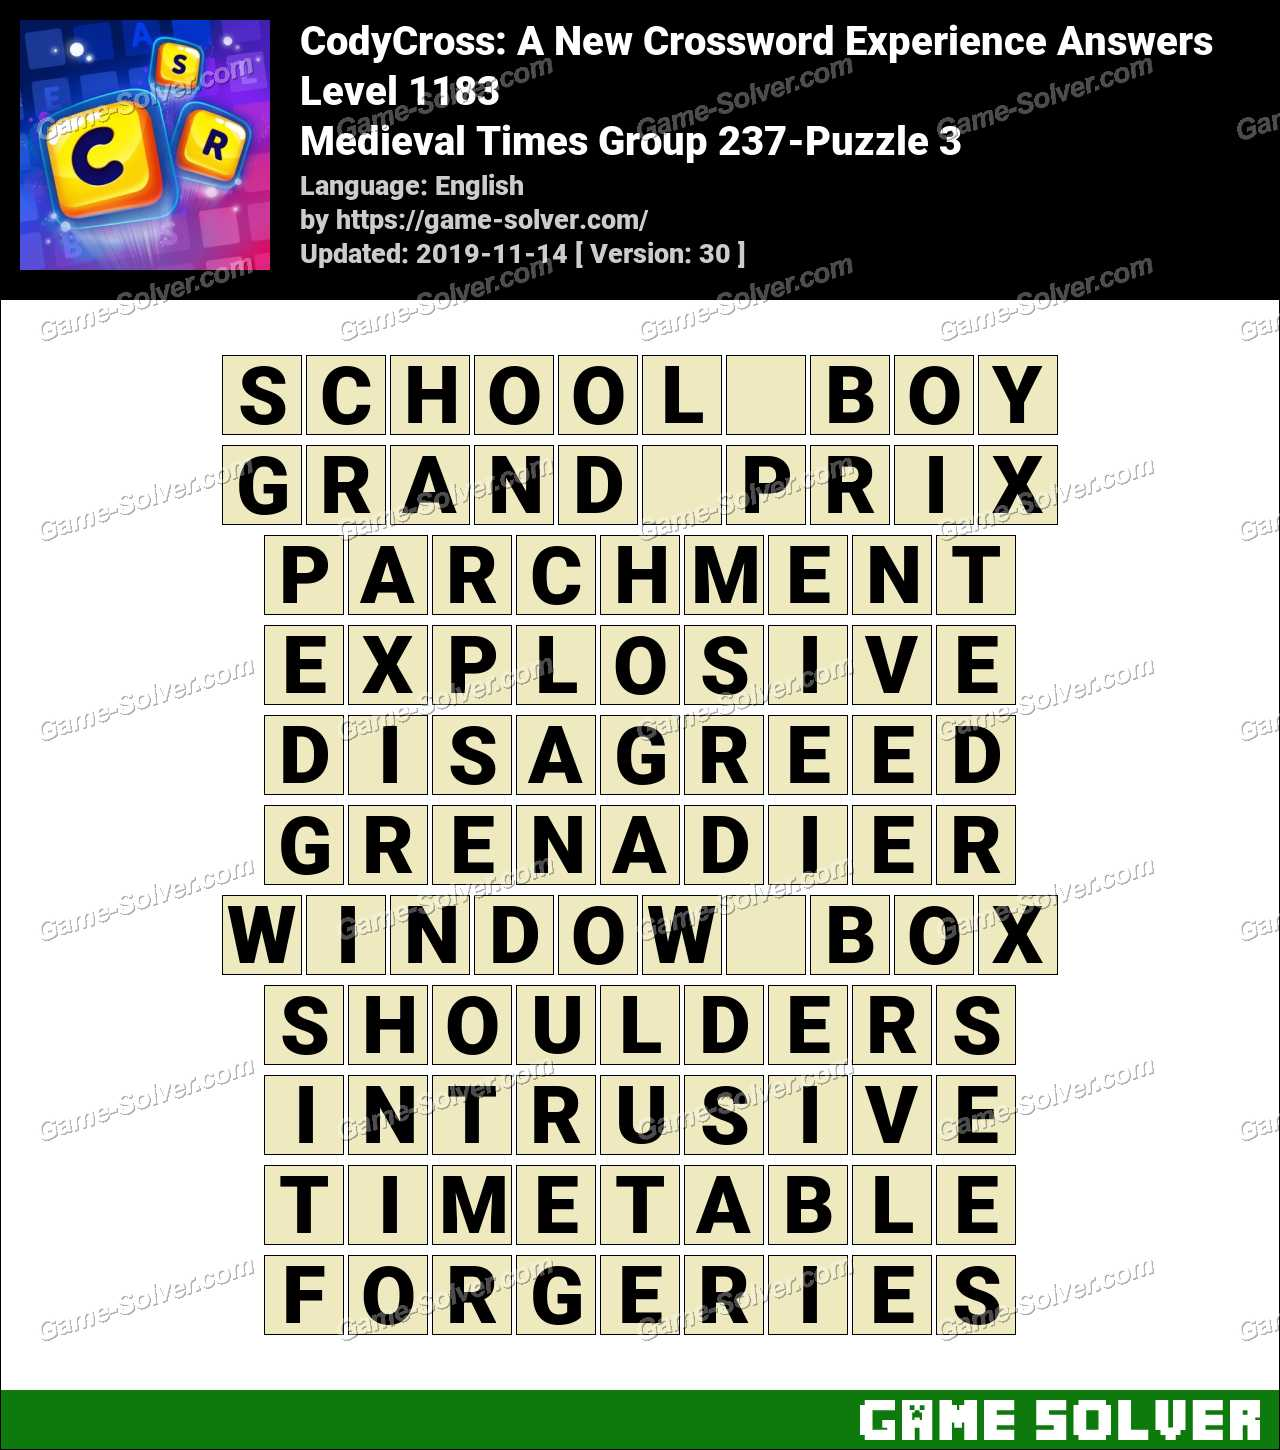 CodyCross Medieval Times Group 237-Puzzle 3 Answers